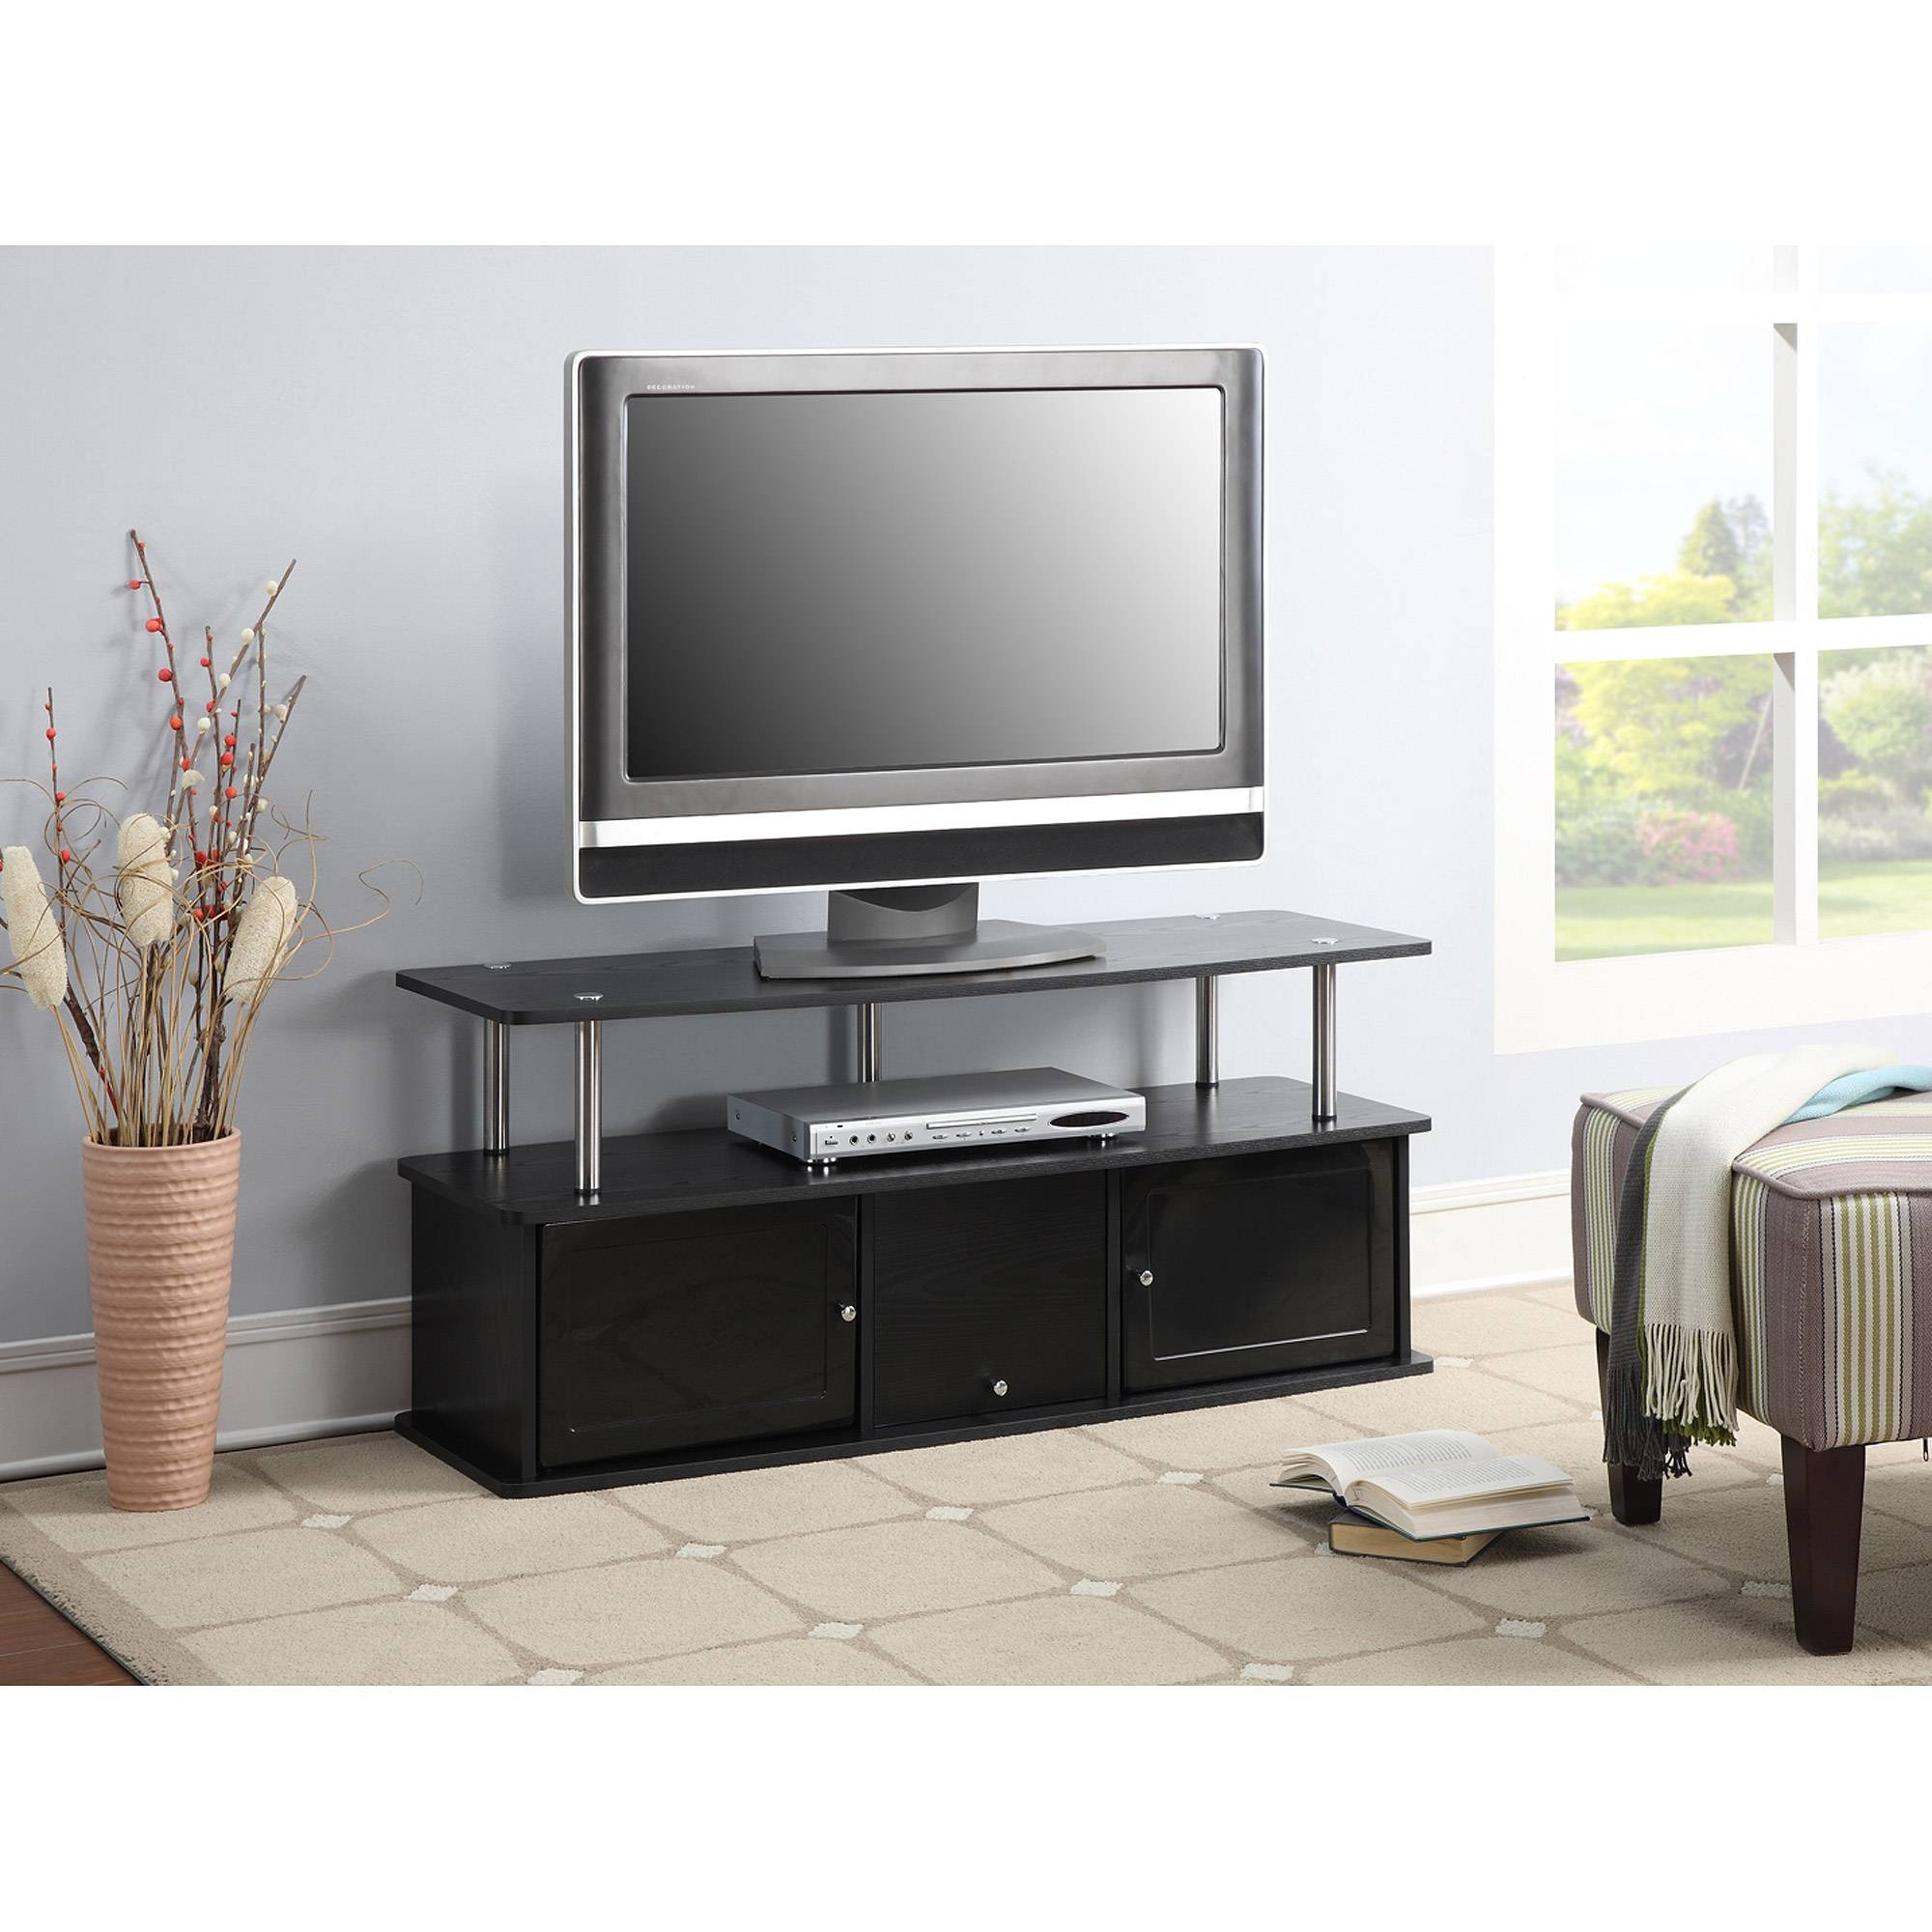 Beautiful Teak Wood Tv Stand 22 With Additional Home Wallpaper Within Tv Stands For Small Spaces (Photo 10 of 15)